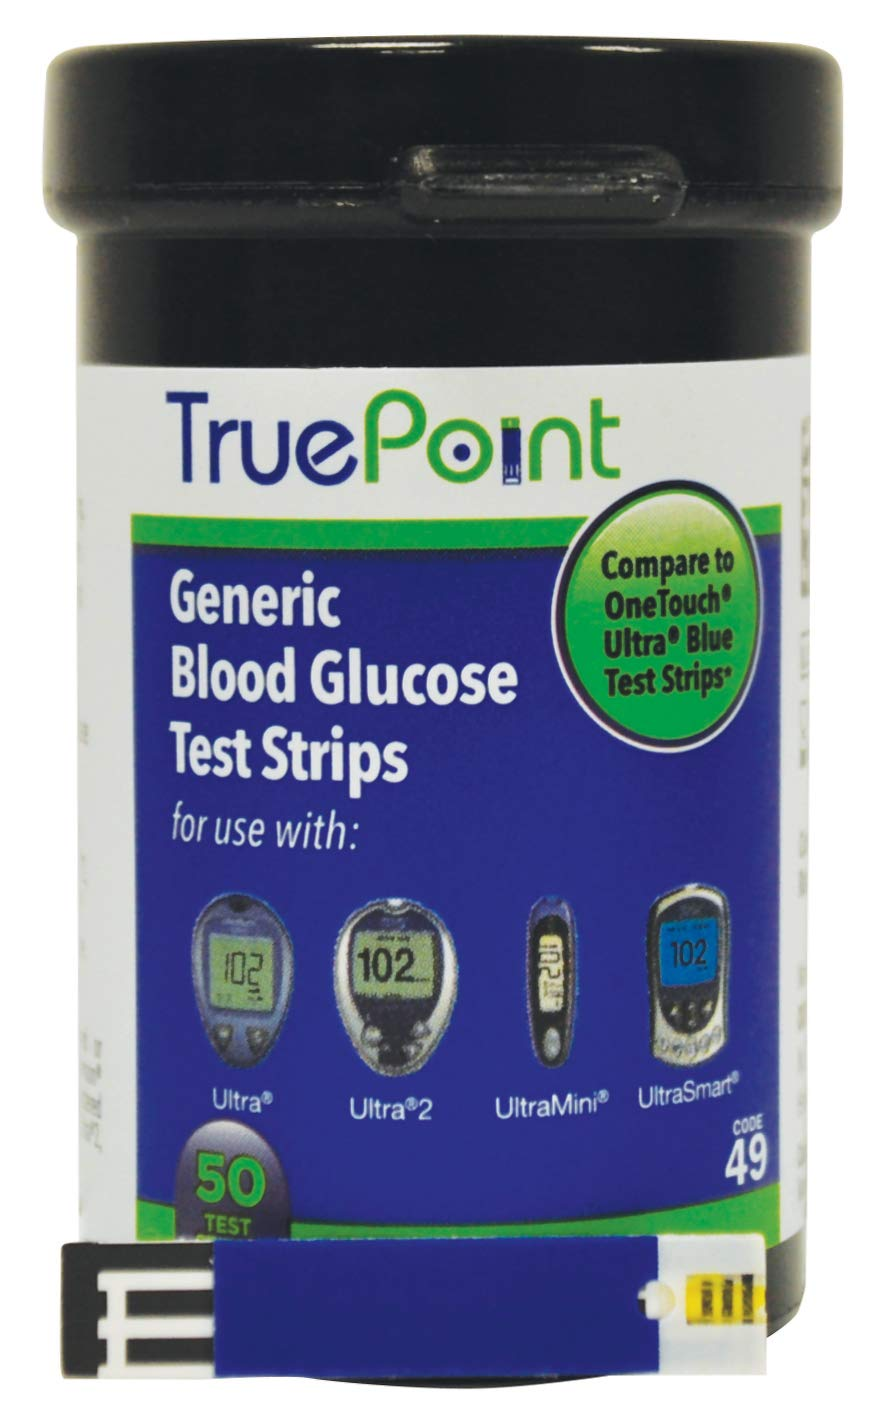 True Point Generic Test Strips 100 Count for Use with One Touch Ultra, Ultra 2 and Ultra Mini Meter. by True Point Generic Test Strips